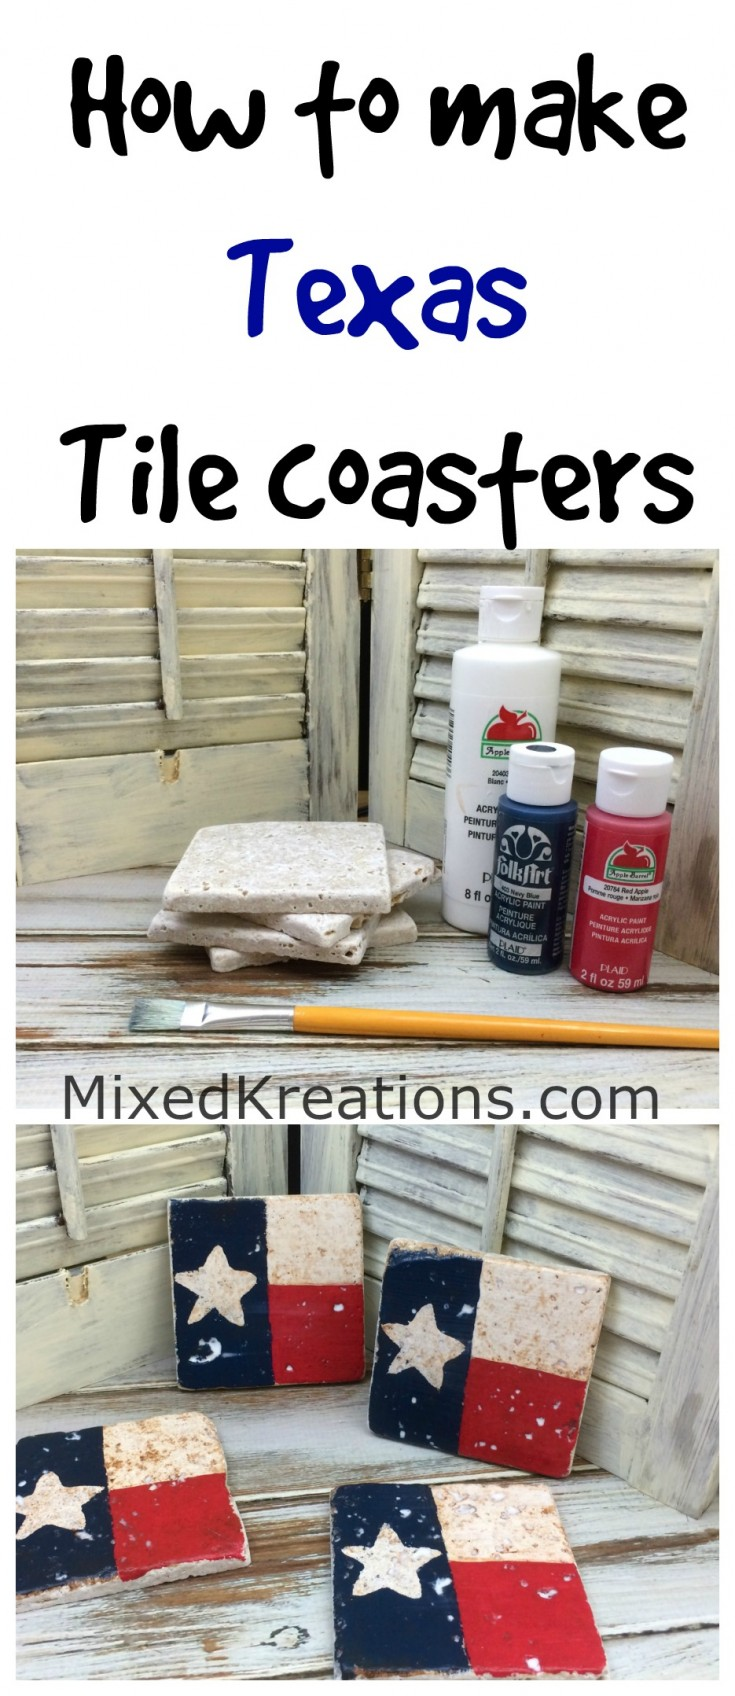 how to make Texas tile coasters | diy tile coasters | handmade coaster gift idea #Texas #TileCoasters #repurposed #GiftIdea MixedKreations.com